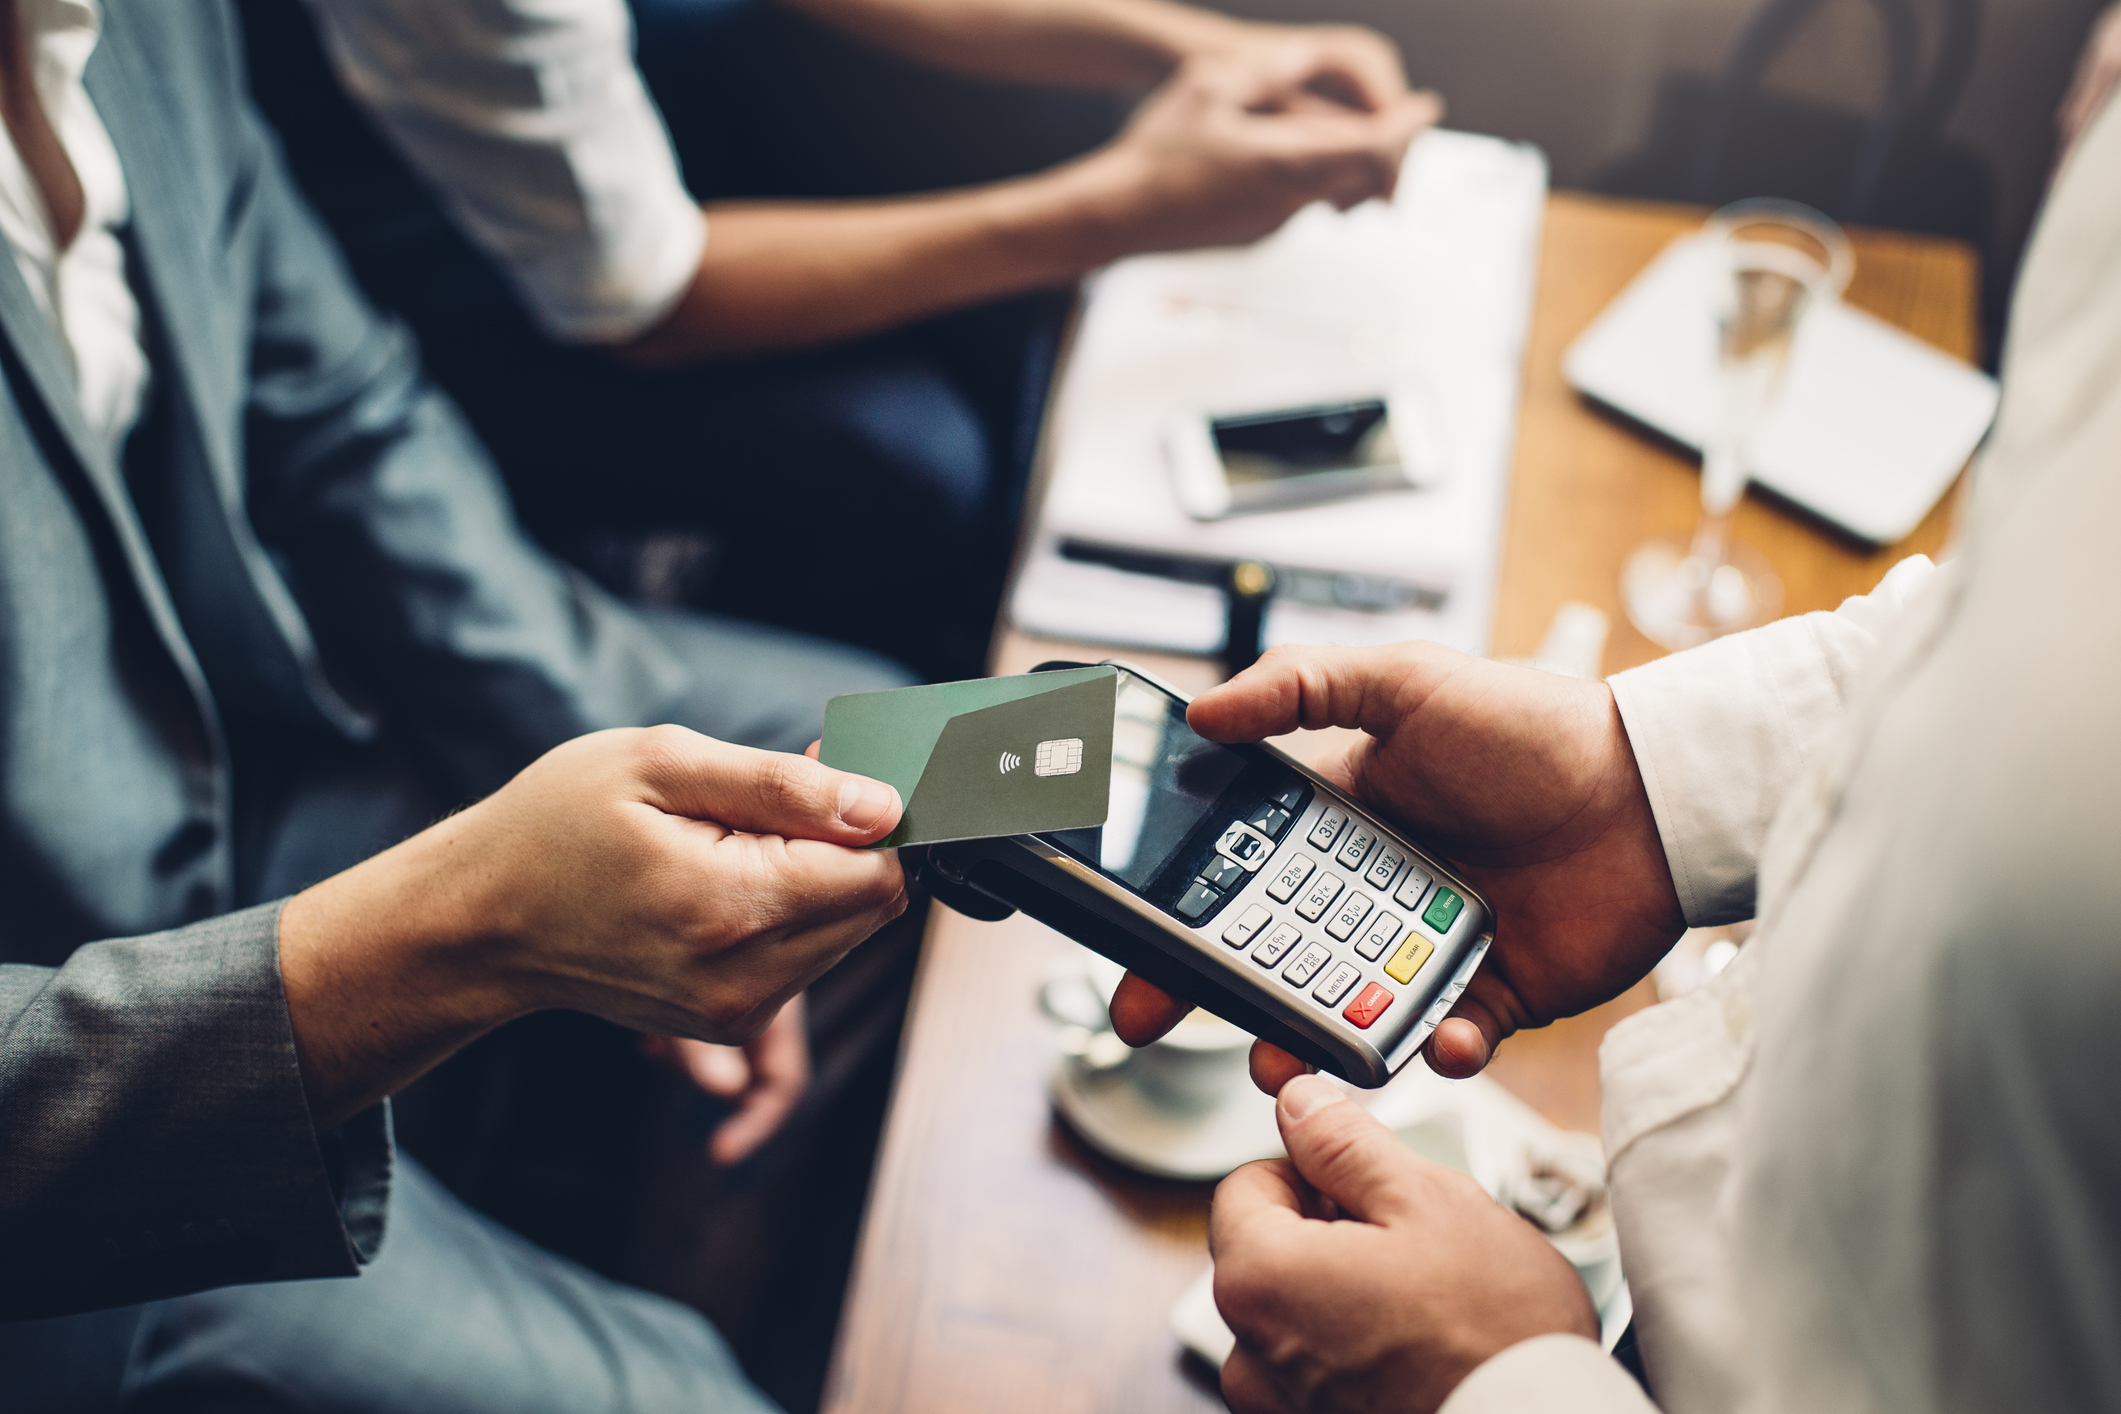 Talk Shop: Can Singapore go cashless? CEO of E-payments app WAAVE responds